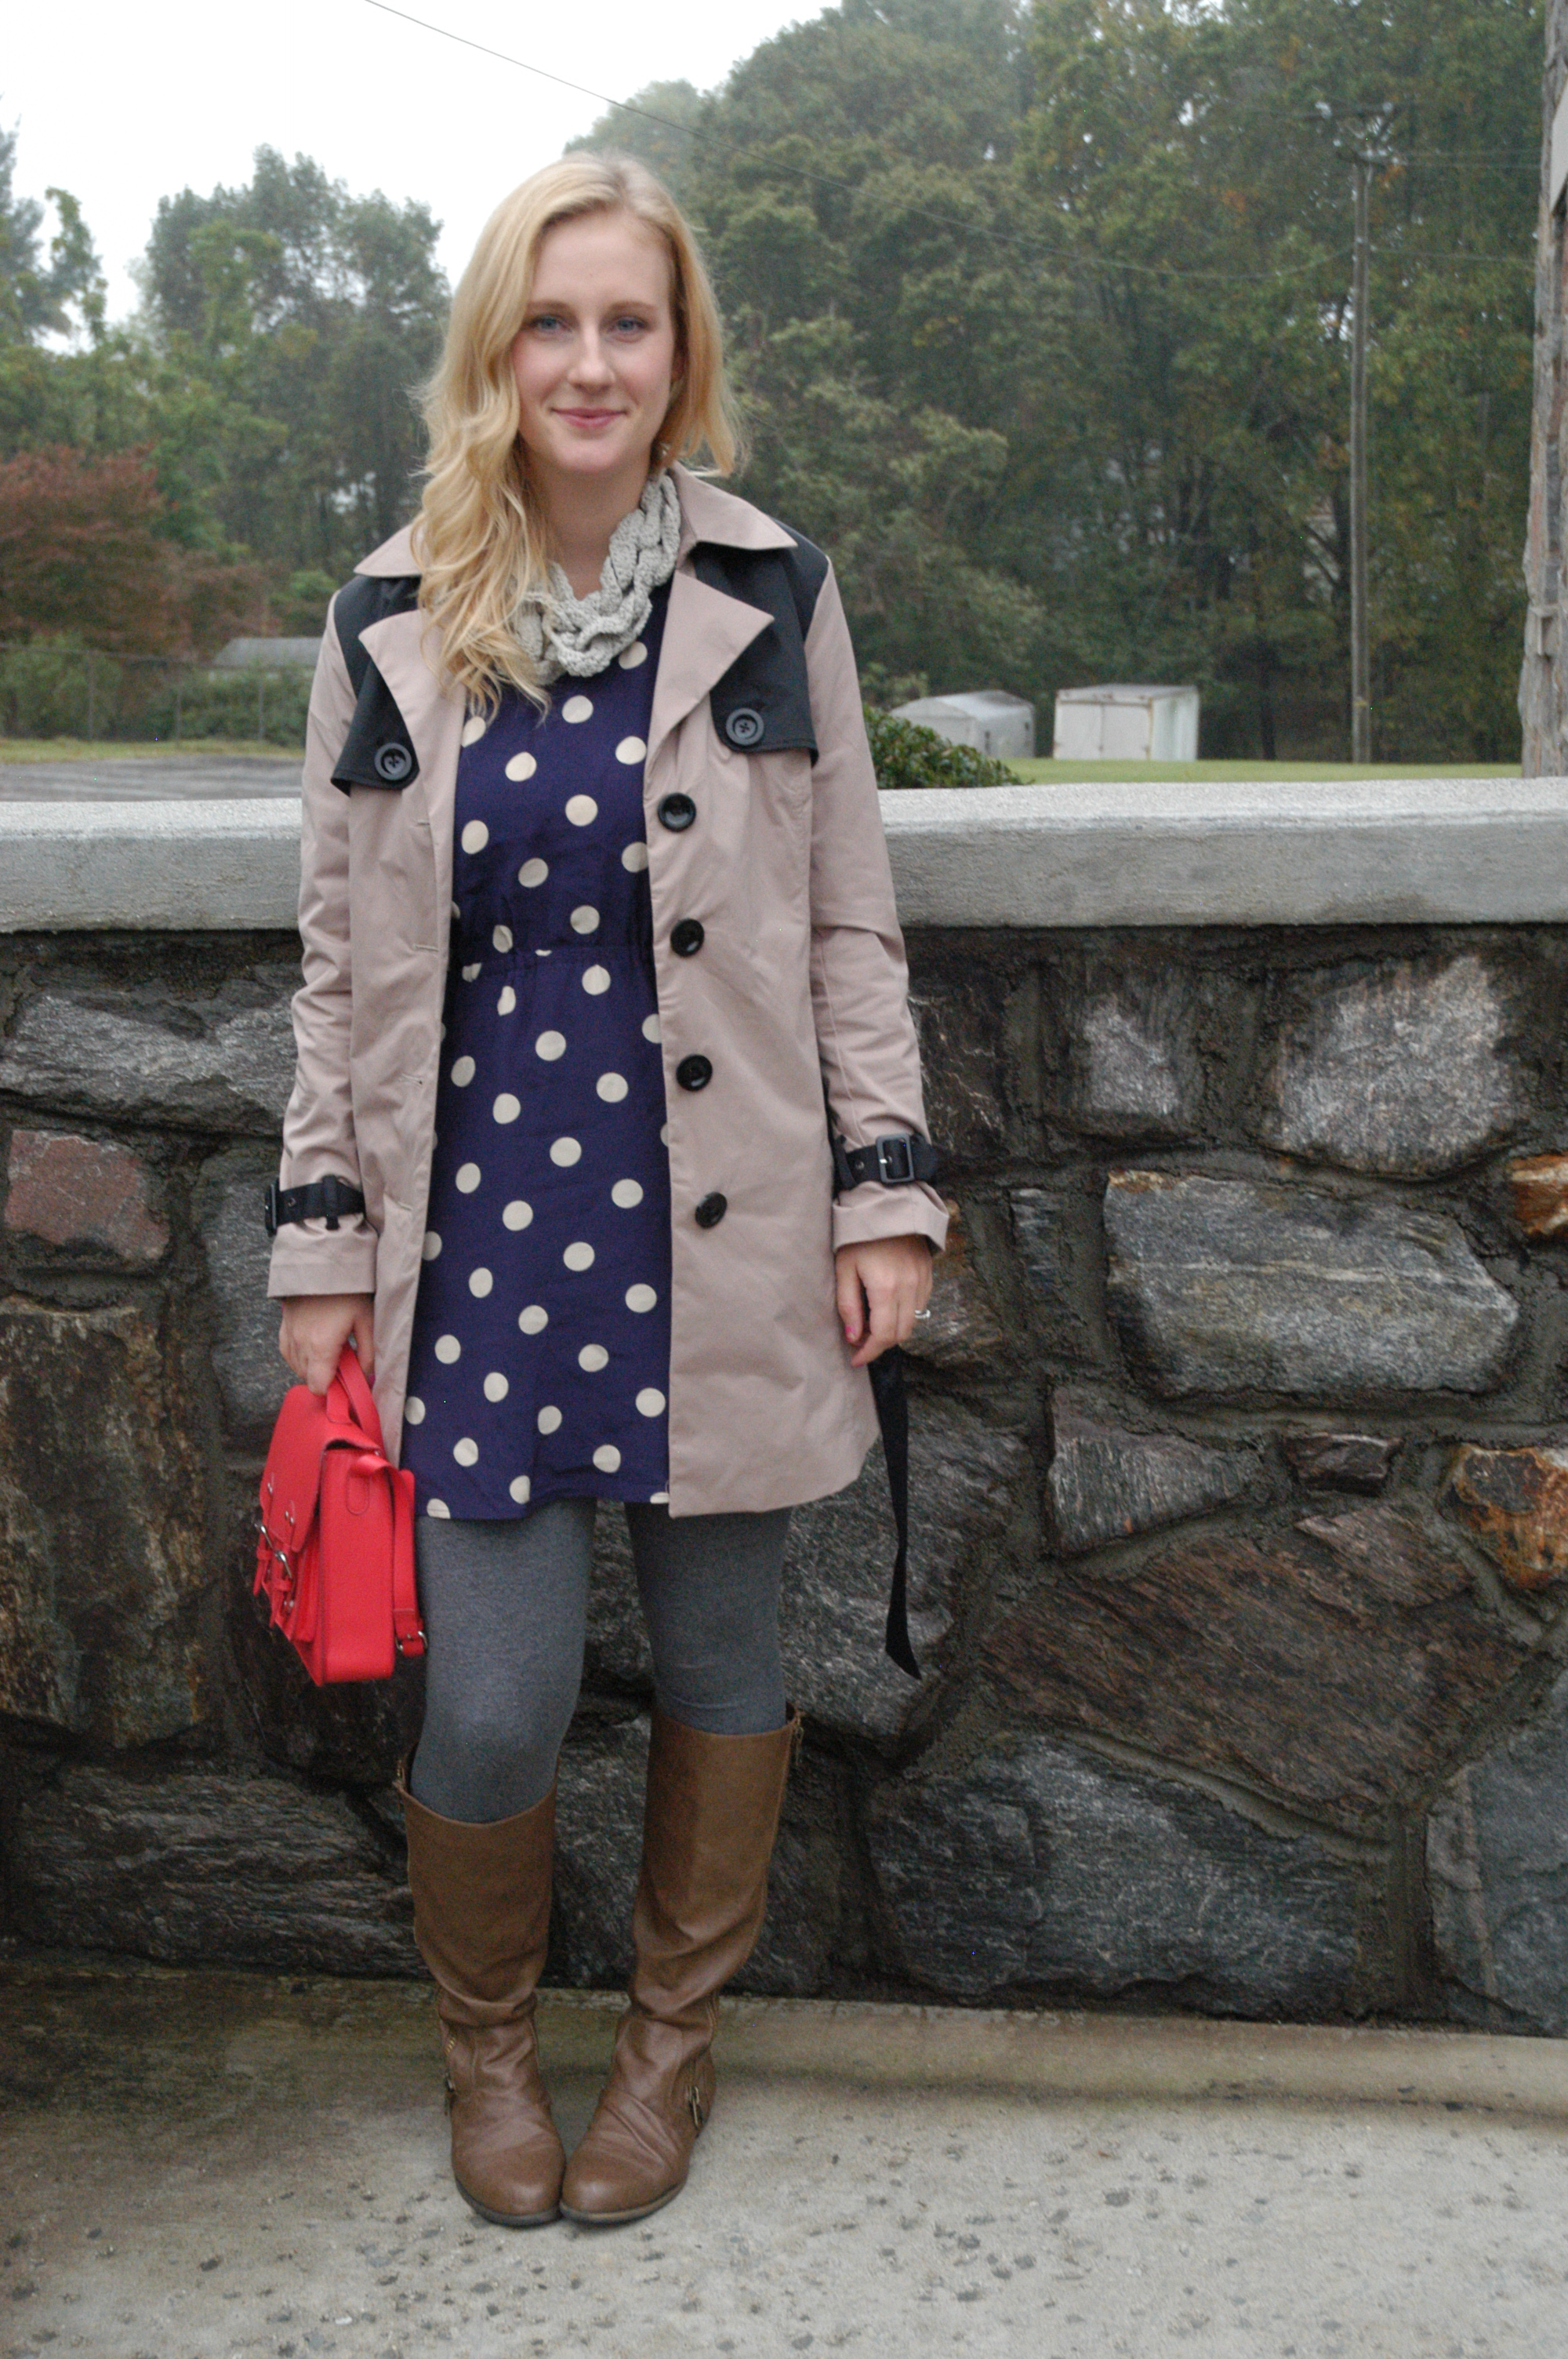 Trench: Cynthia Rowley | Dress: Broadway & Broome (J.Crew) | Boots: Target | Leggings: Forever 21 | Purse: H&M | Scarf: gift from mom (thanks mom!!) Jewelry: gift, Joann Fabrics, Target